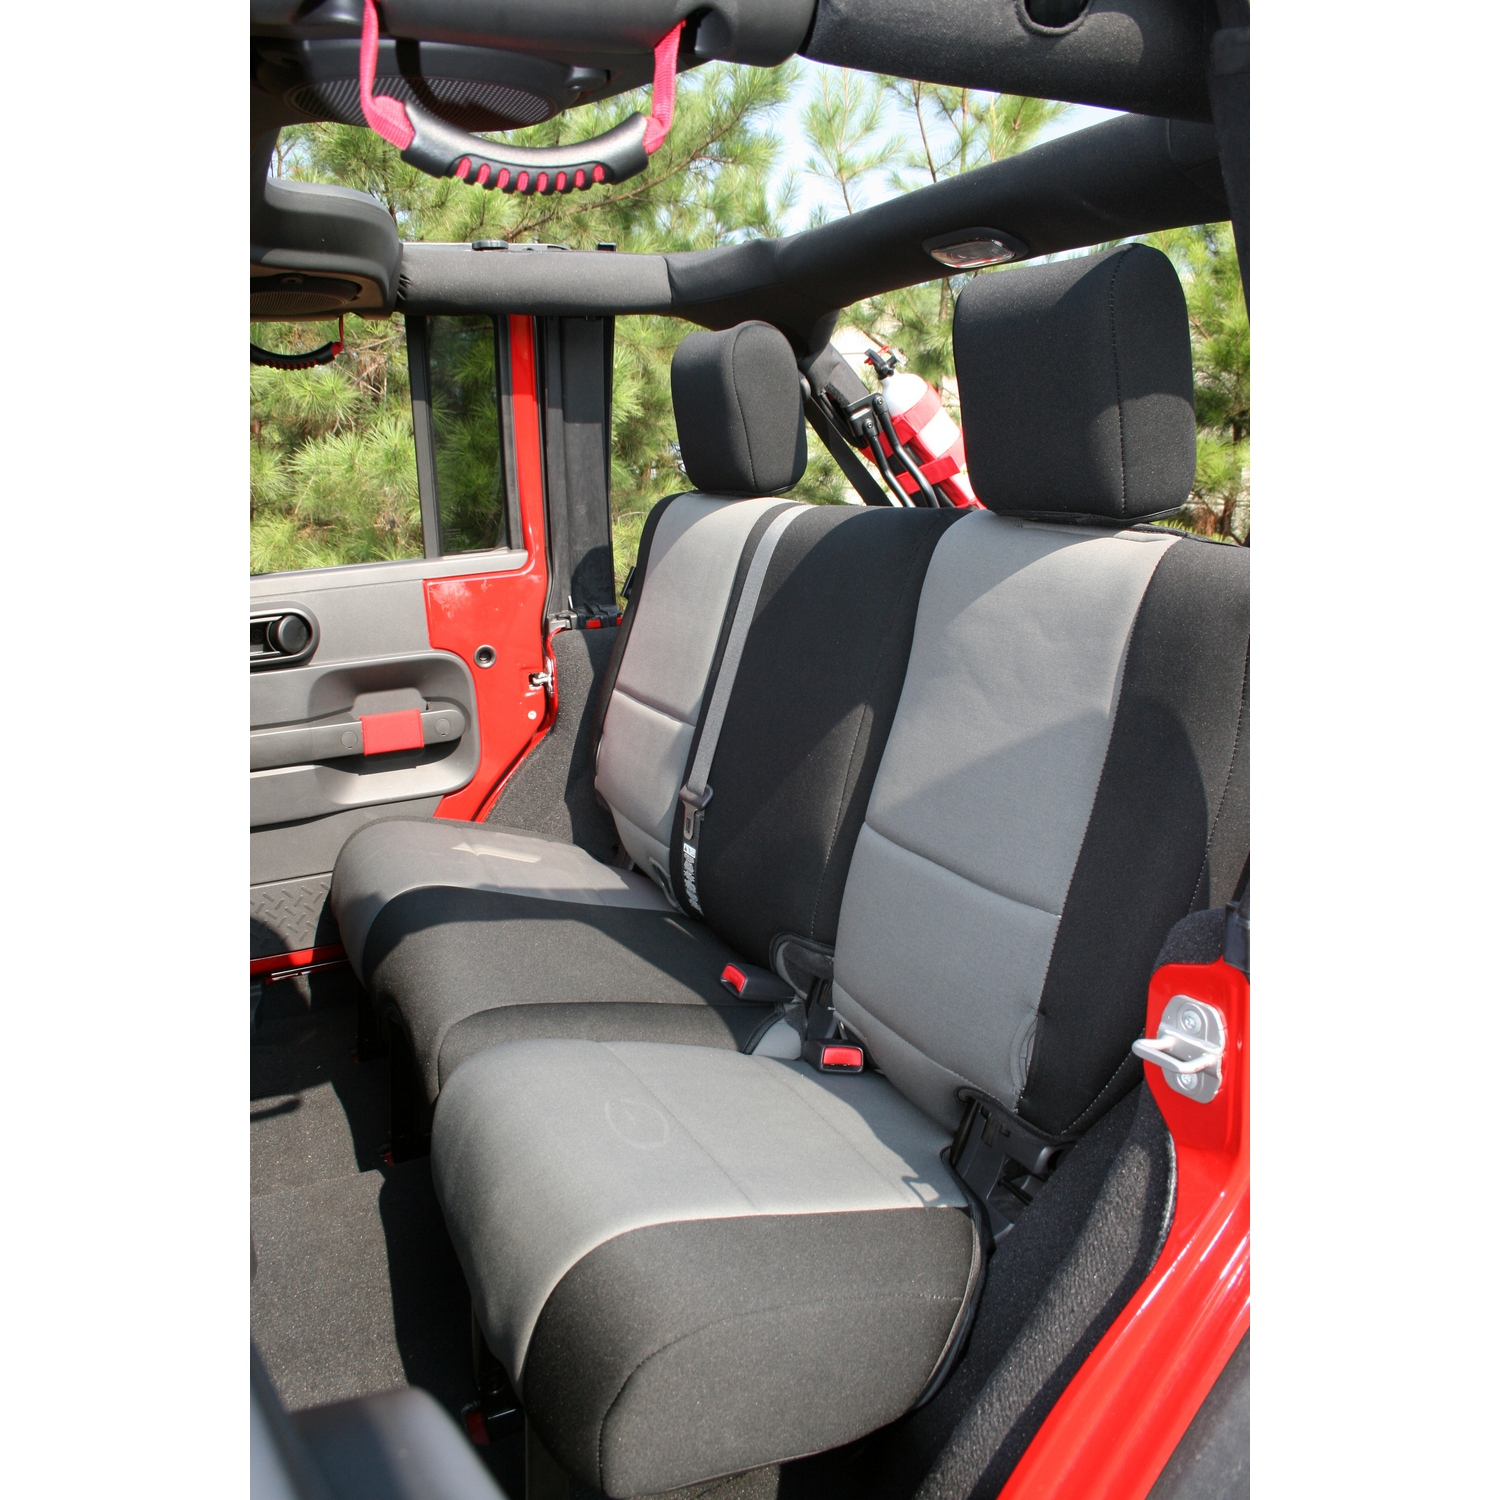 Rugged Ridge Rear Seat Cover Black/Grey - JK 4dr